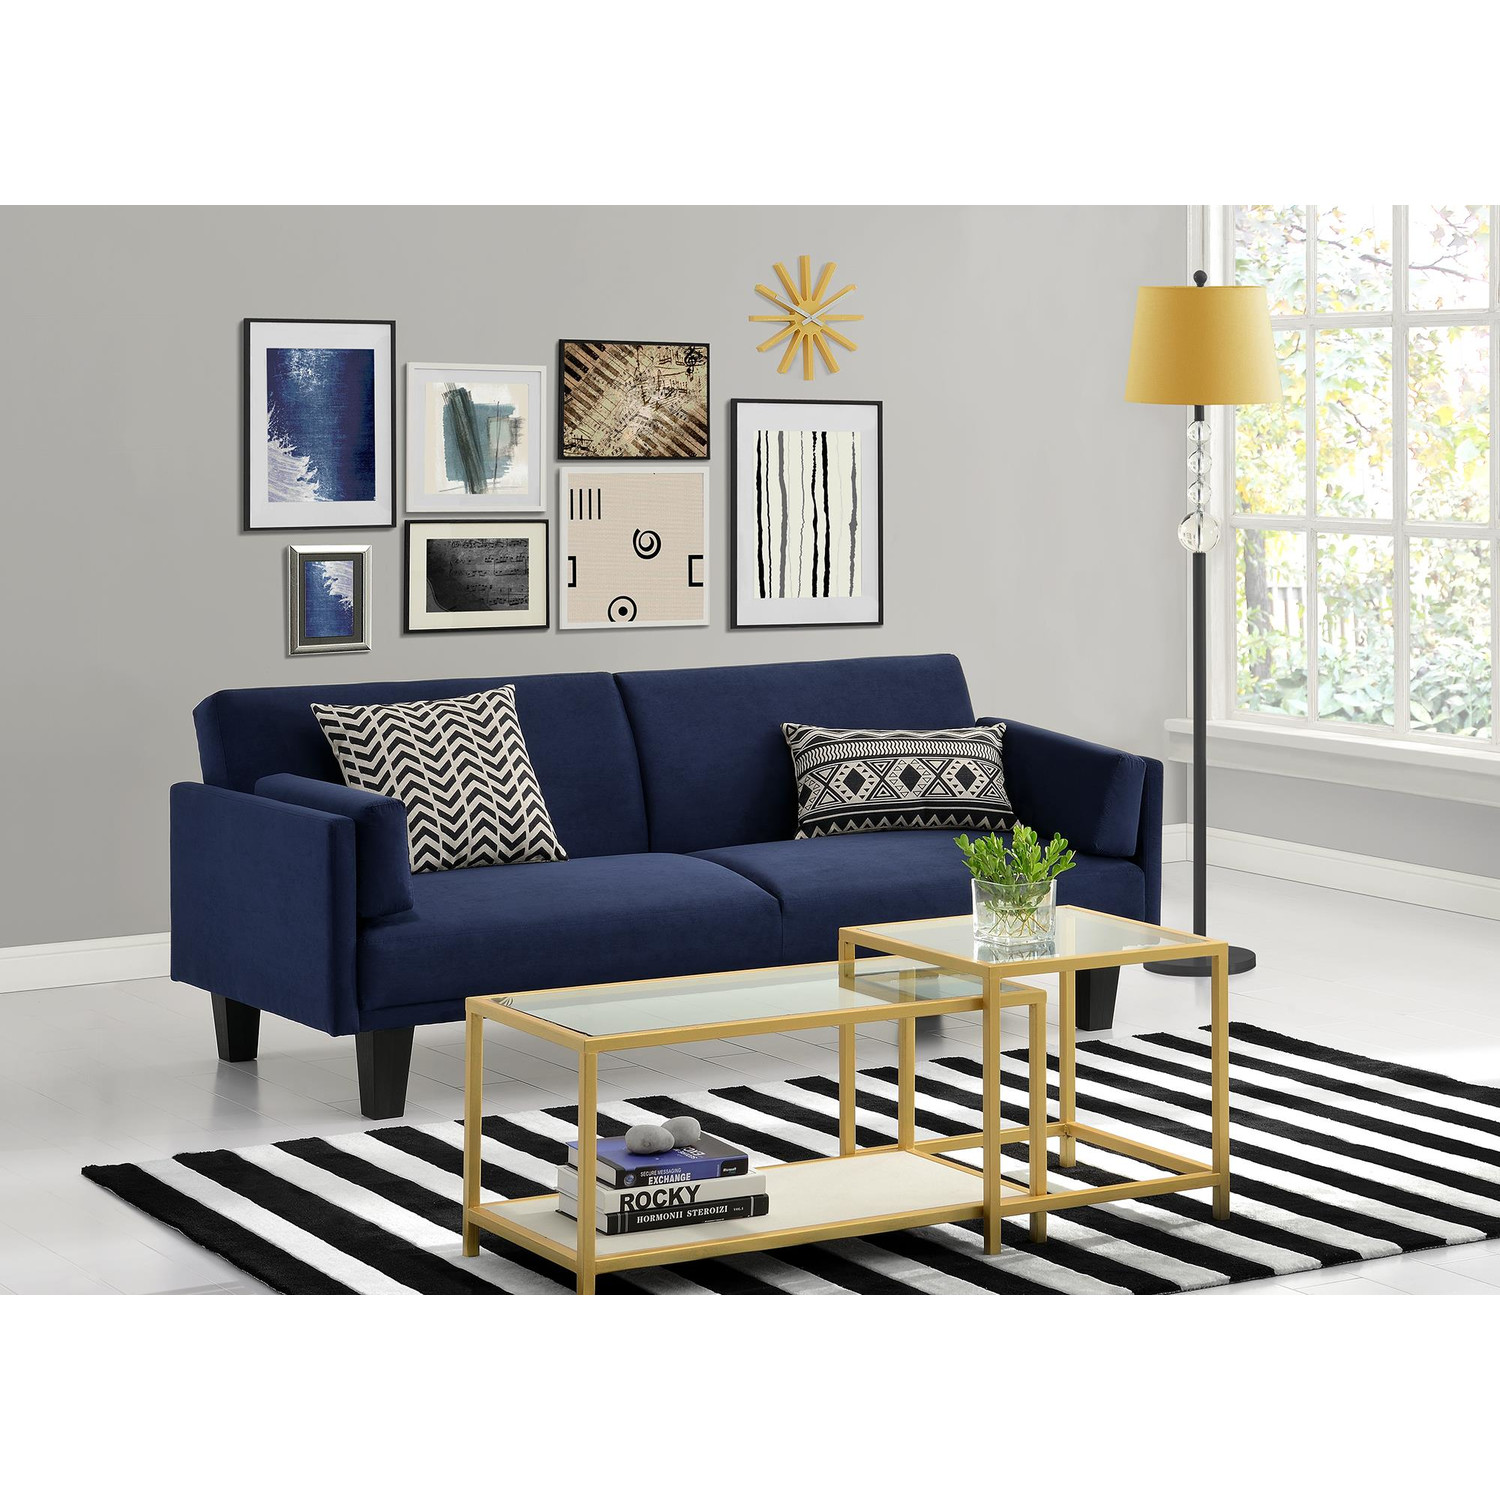 Image of: studio decor frames basics metro